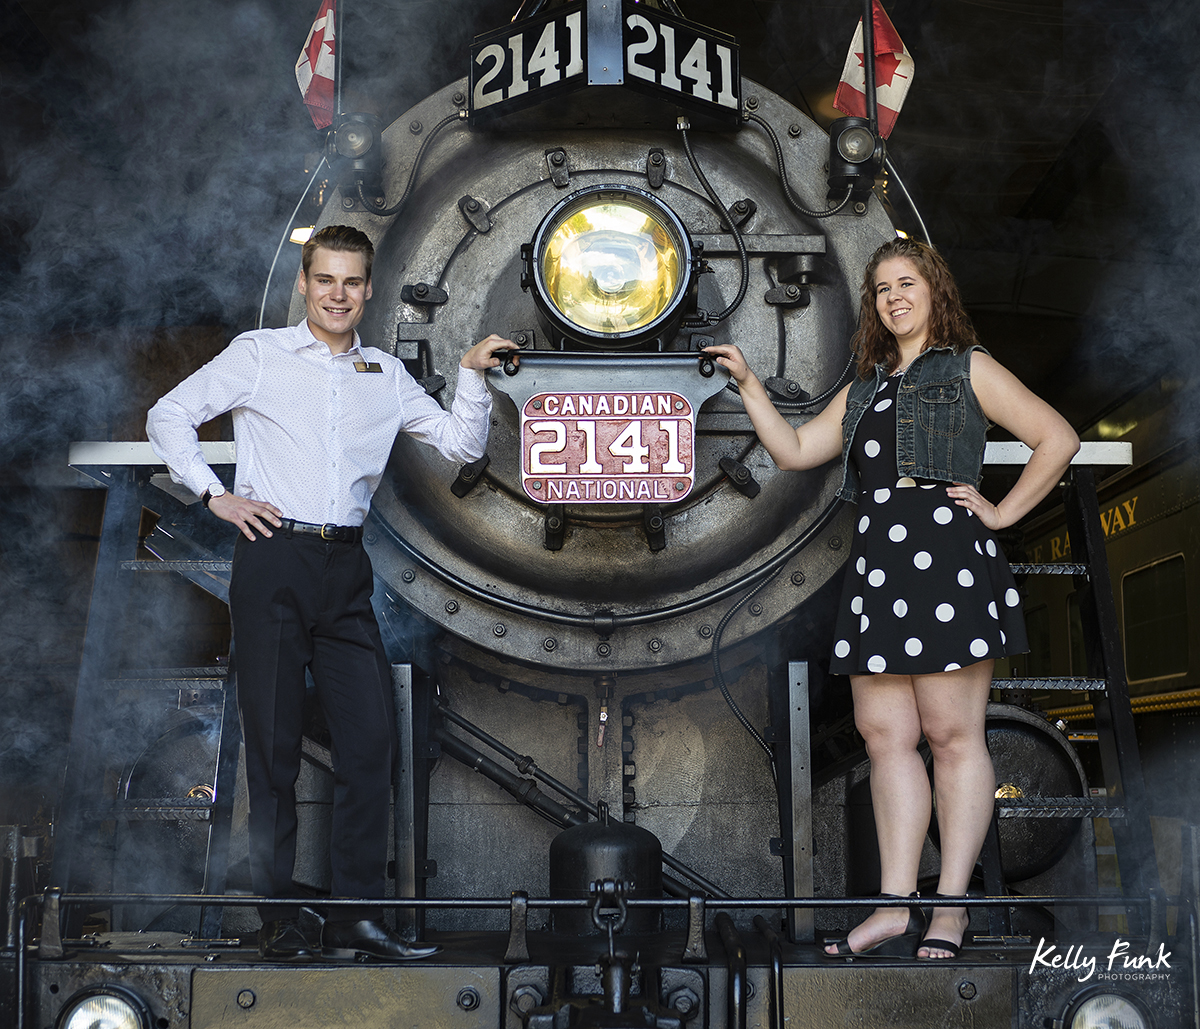 employees of the Kamloops Heritage railway pose during shooting for the 2019 Kamloops fire fighters calendar, Thompson Okanagan region, British Columbia, Canada